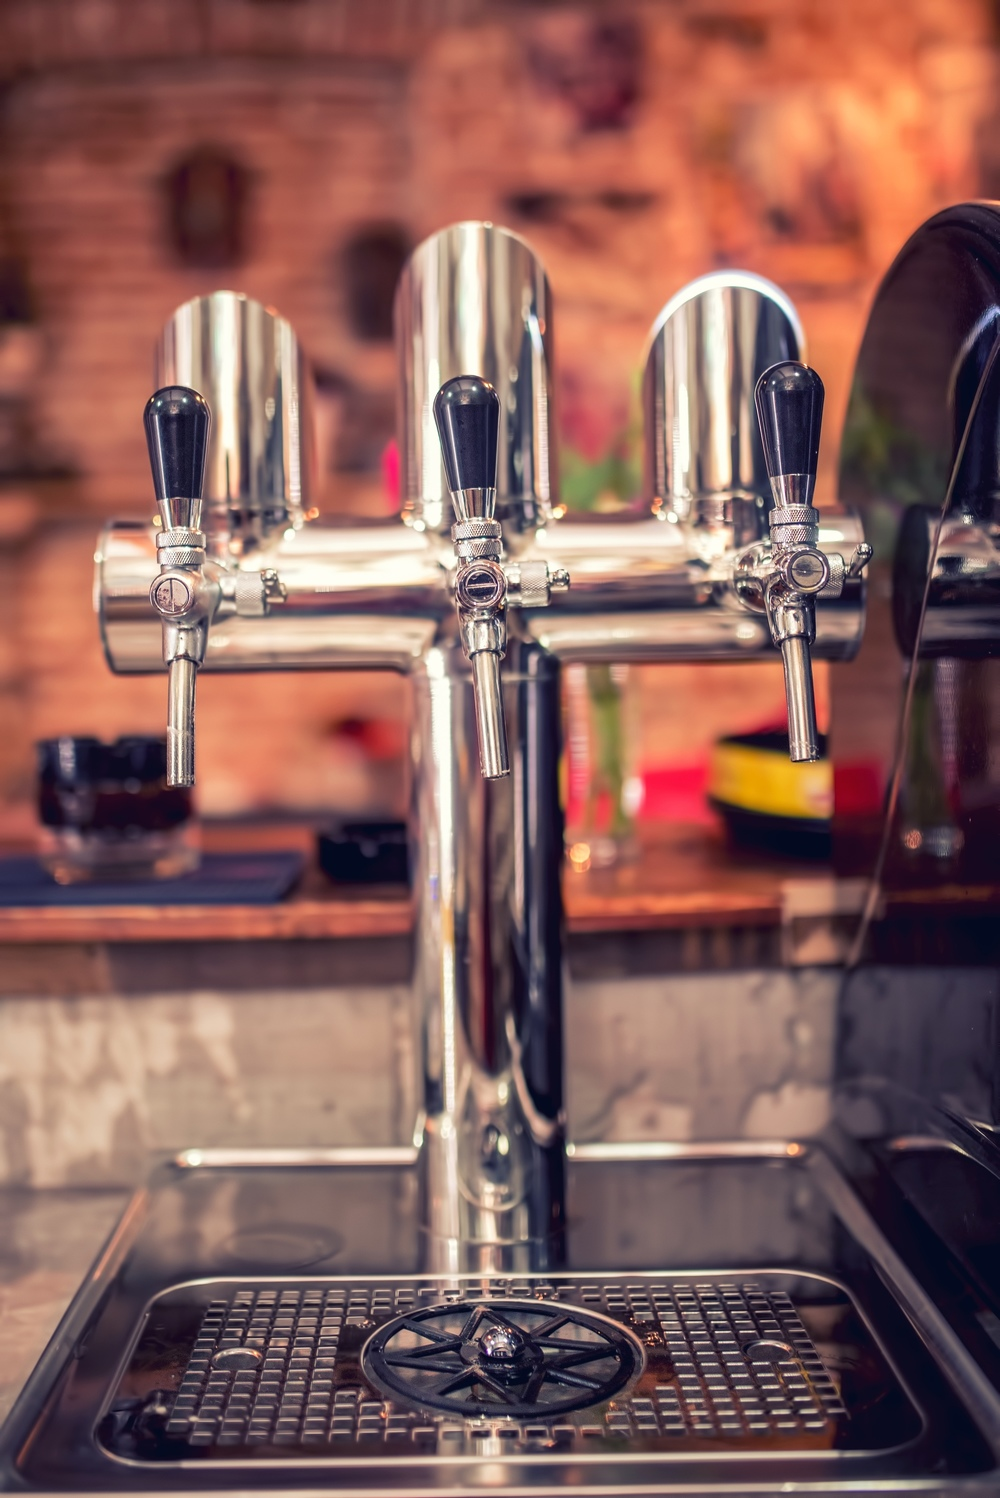 Beer-Taps-At-Restaurant-Bar.jpg